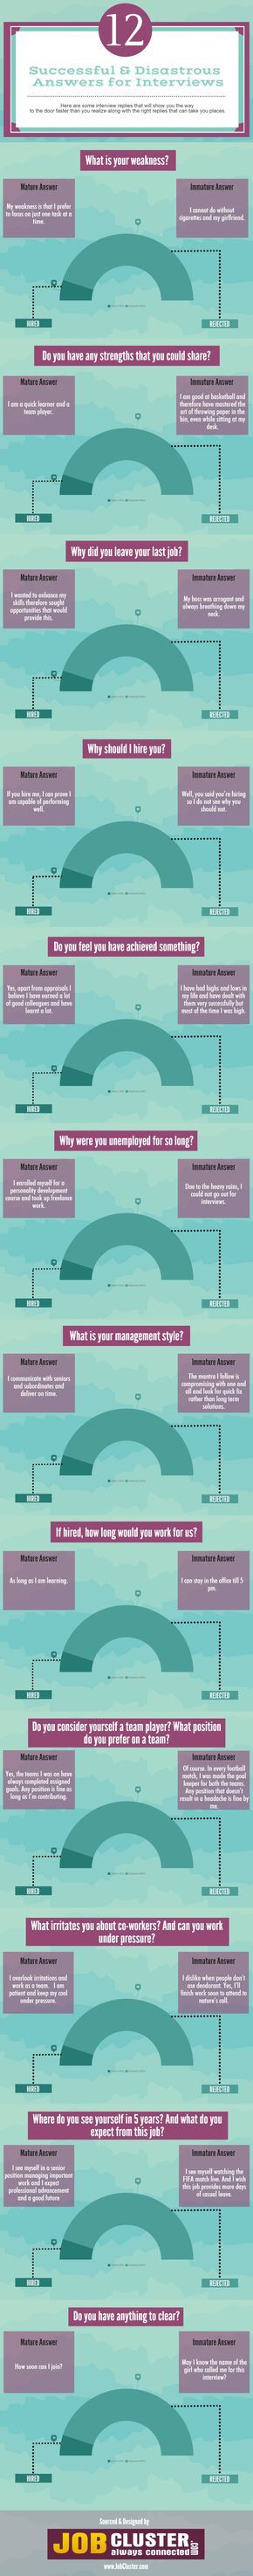 ideas about management interview questions successful and disastrous answers for behavioral interview questions infographic interview jobinterviiew